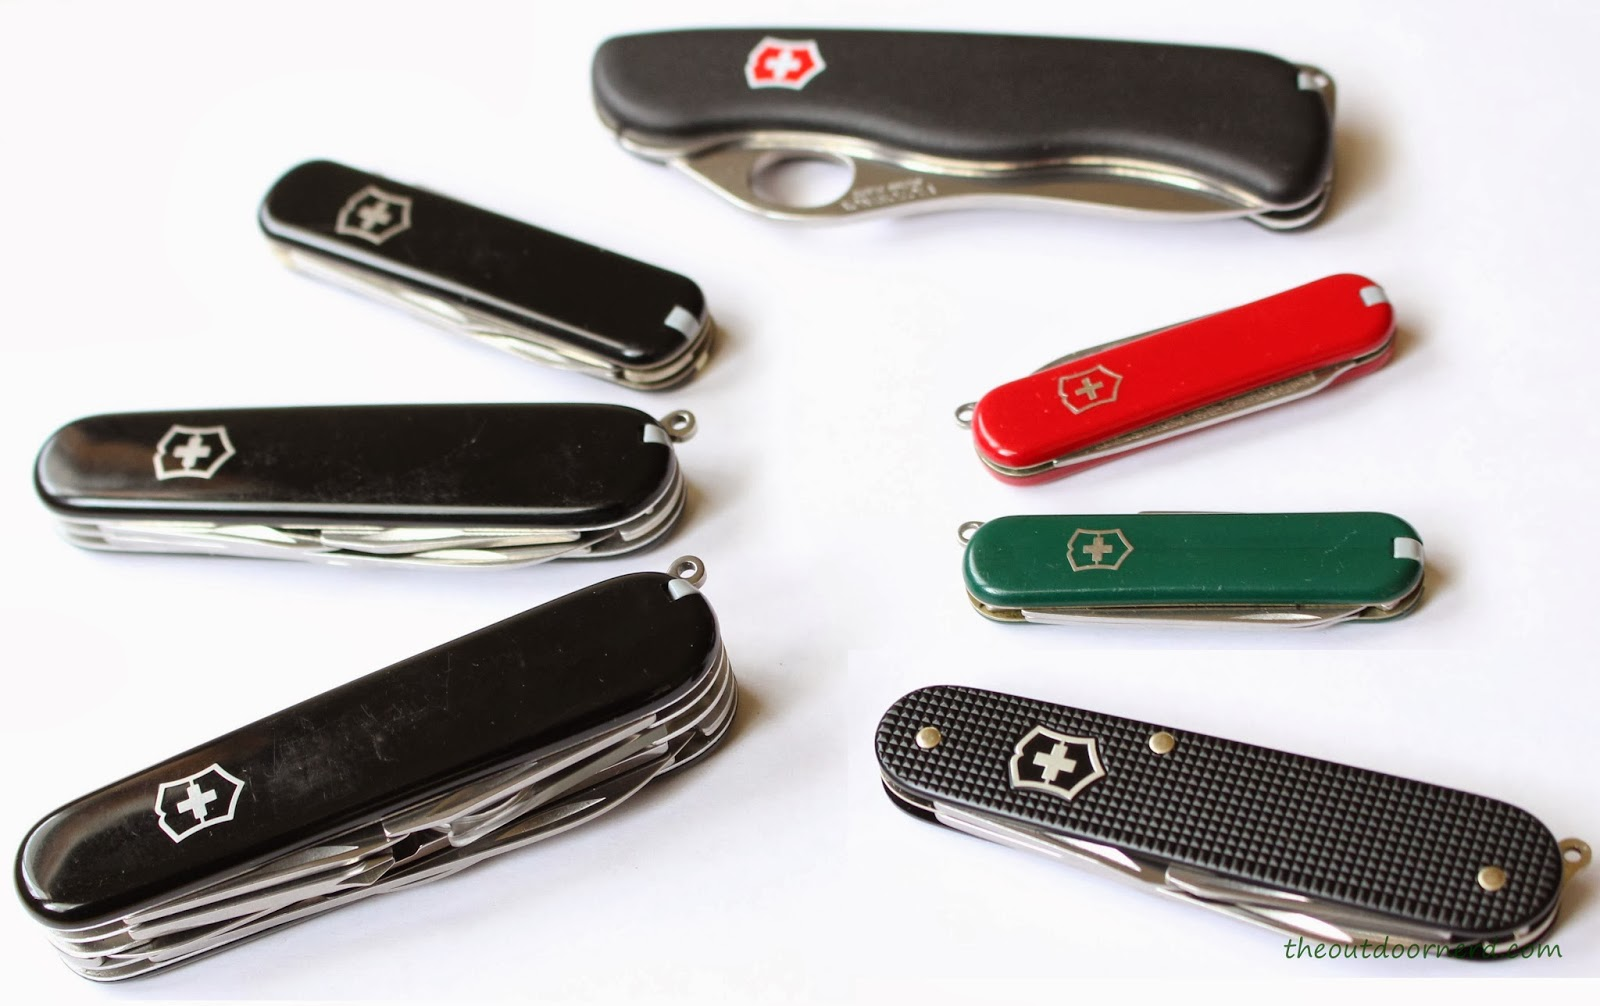 Victorinox Roundup: Explorer, Executive, Tinker, Sentinel, Cadet and Classics